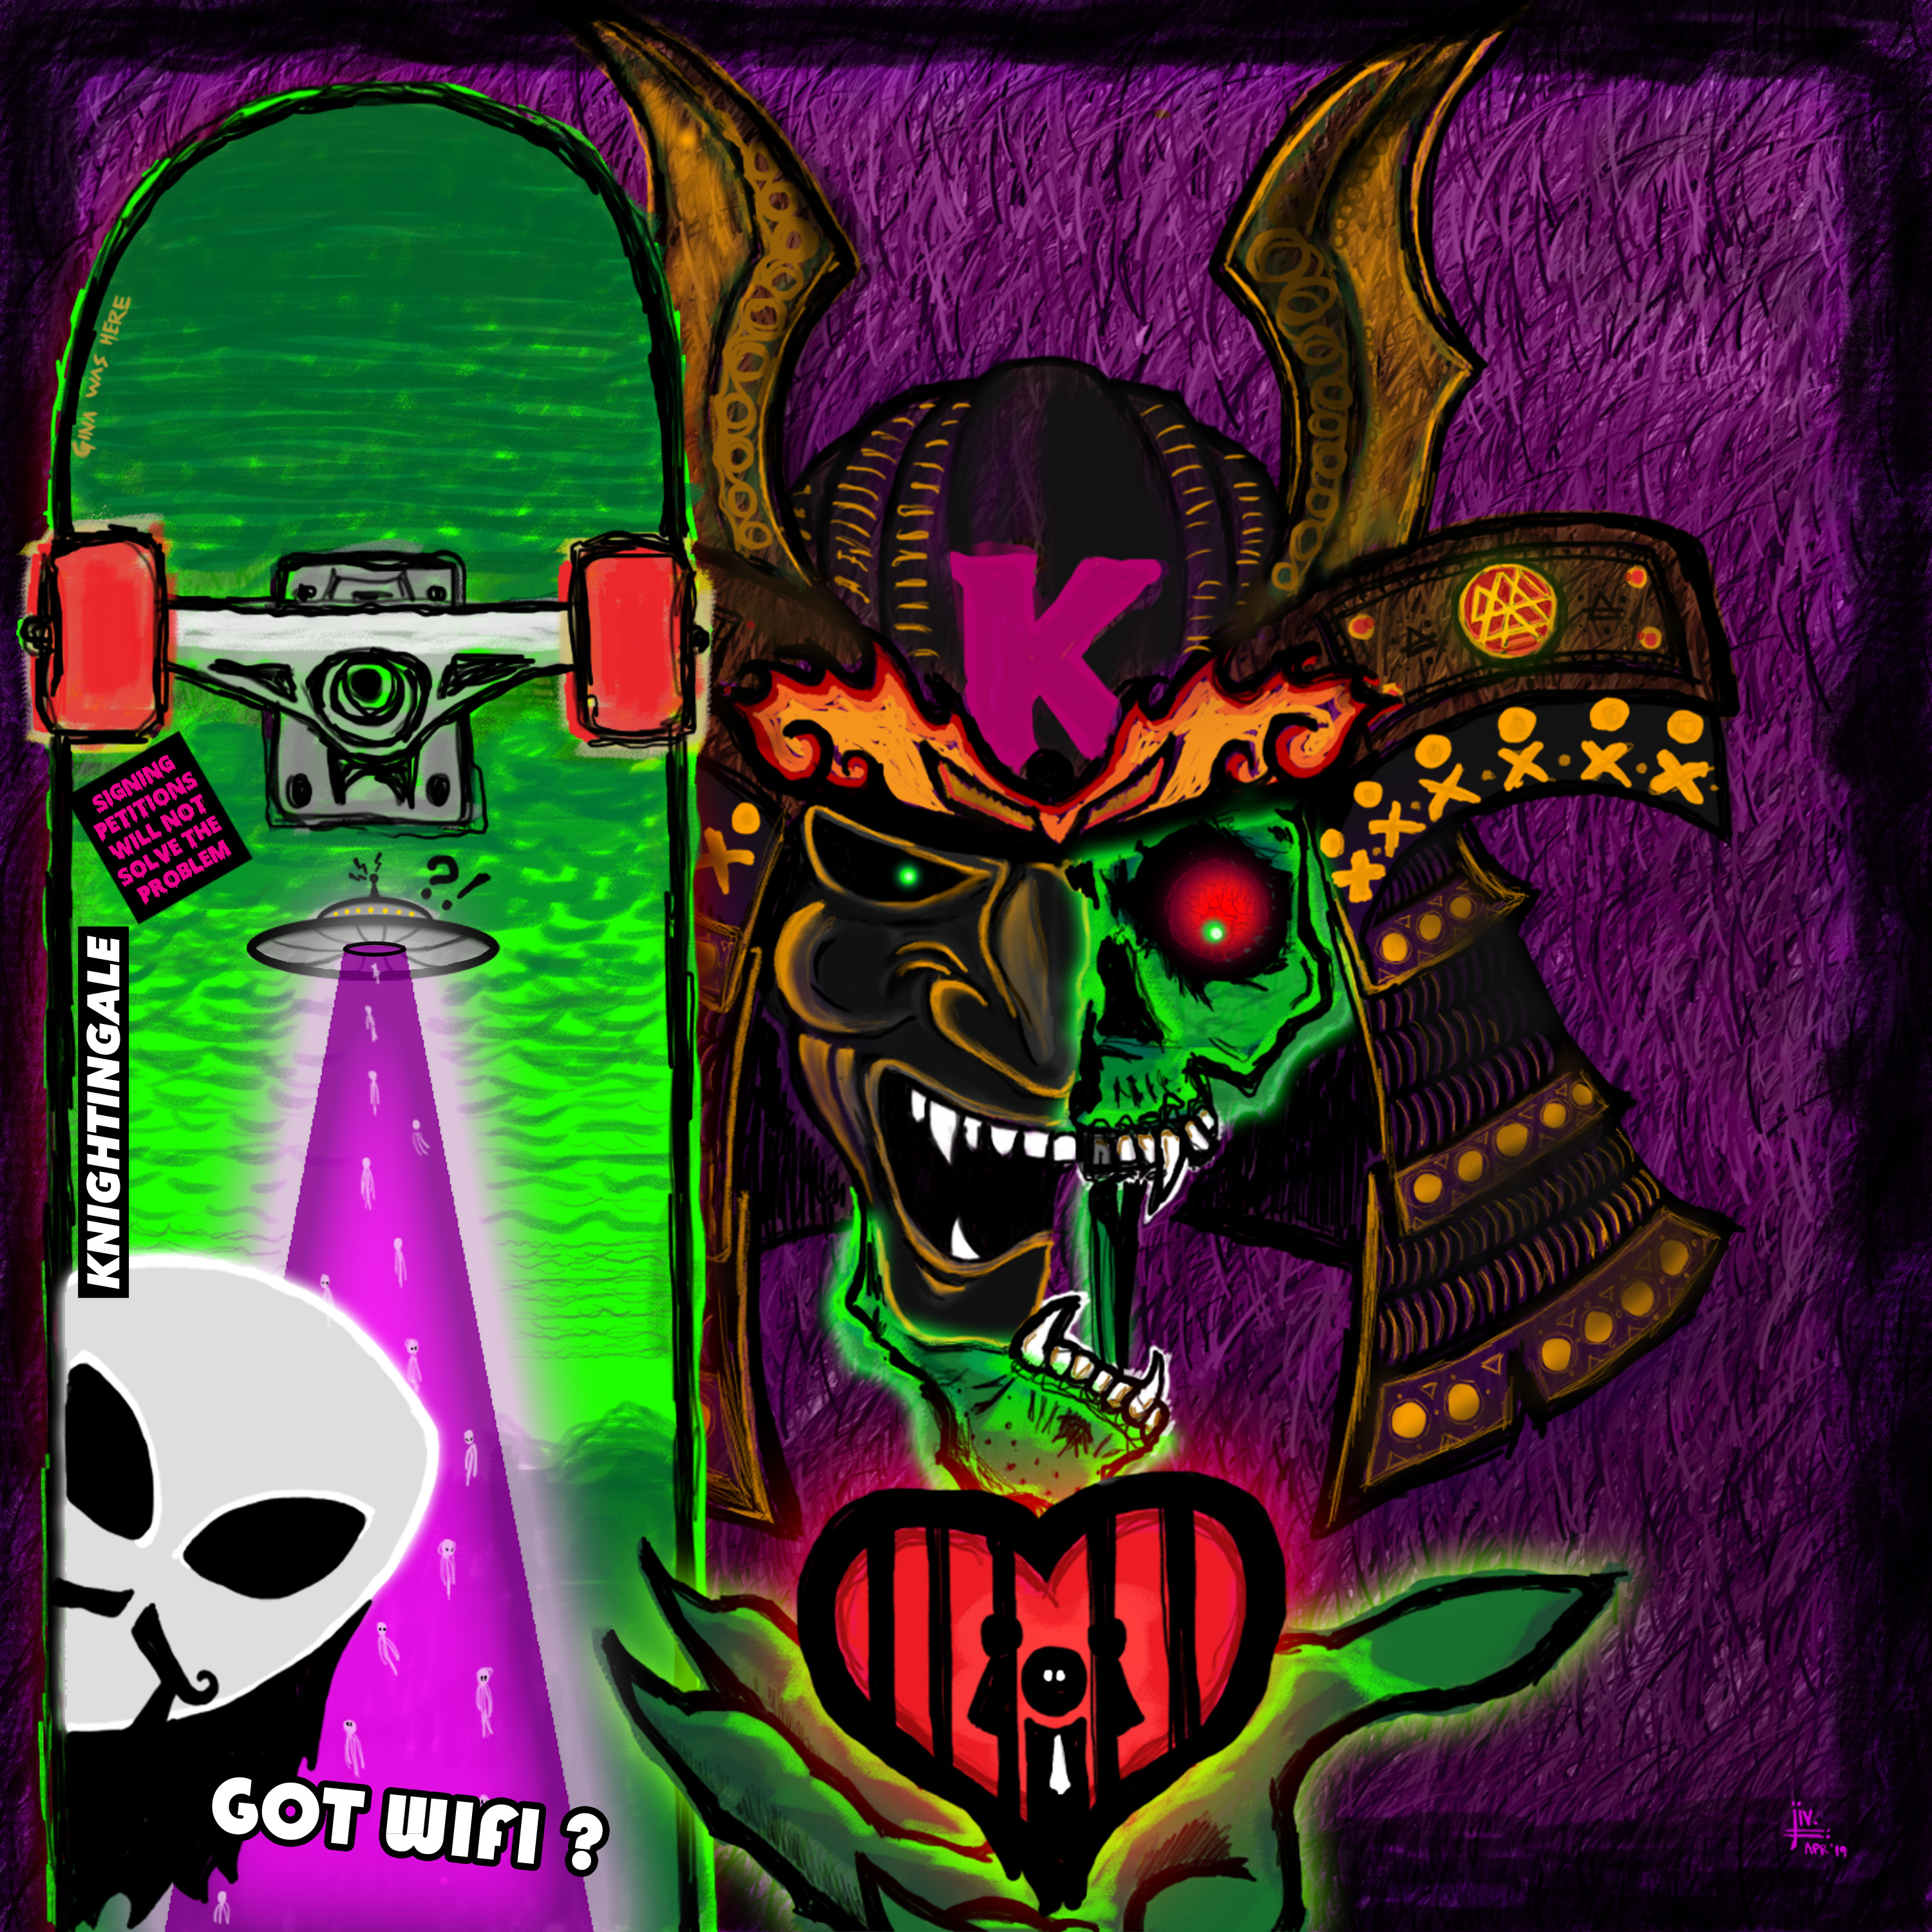 Skate destroy artwork